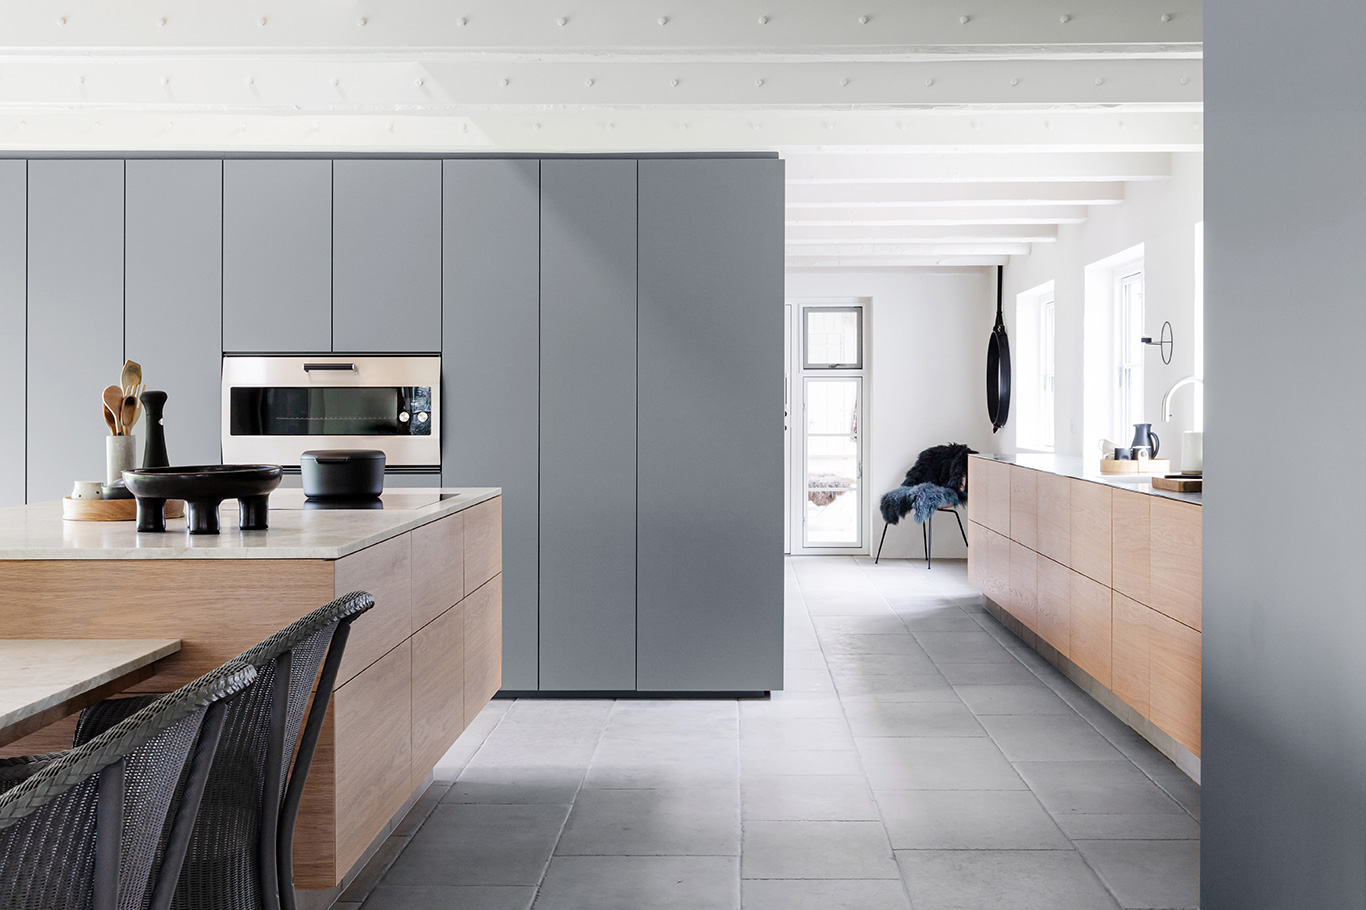 An architect-designed kitchen from Multiform made from slipmatched oak and grey Fenix